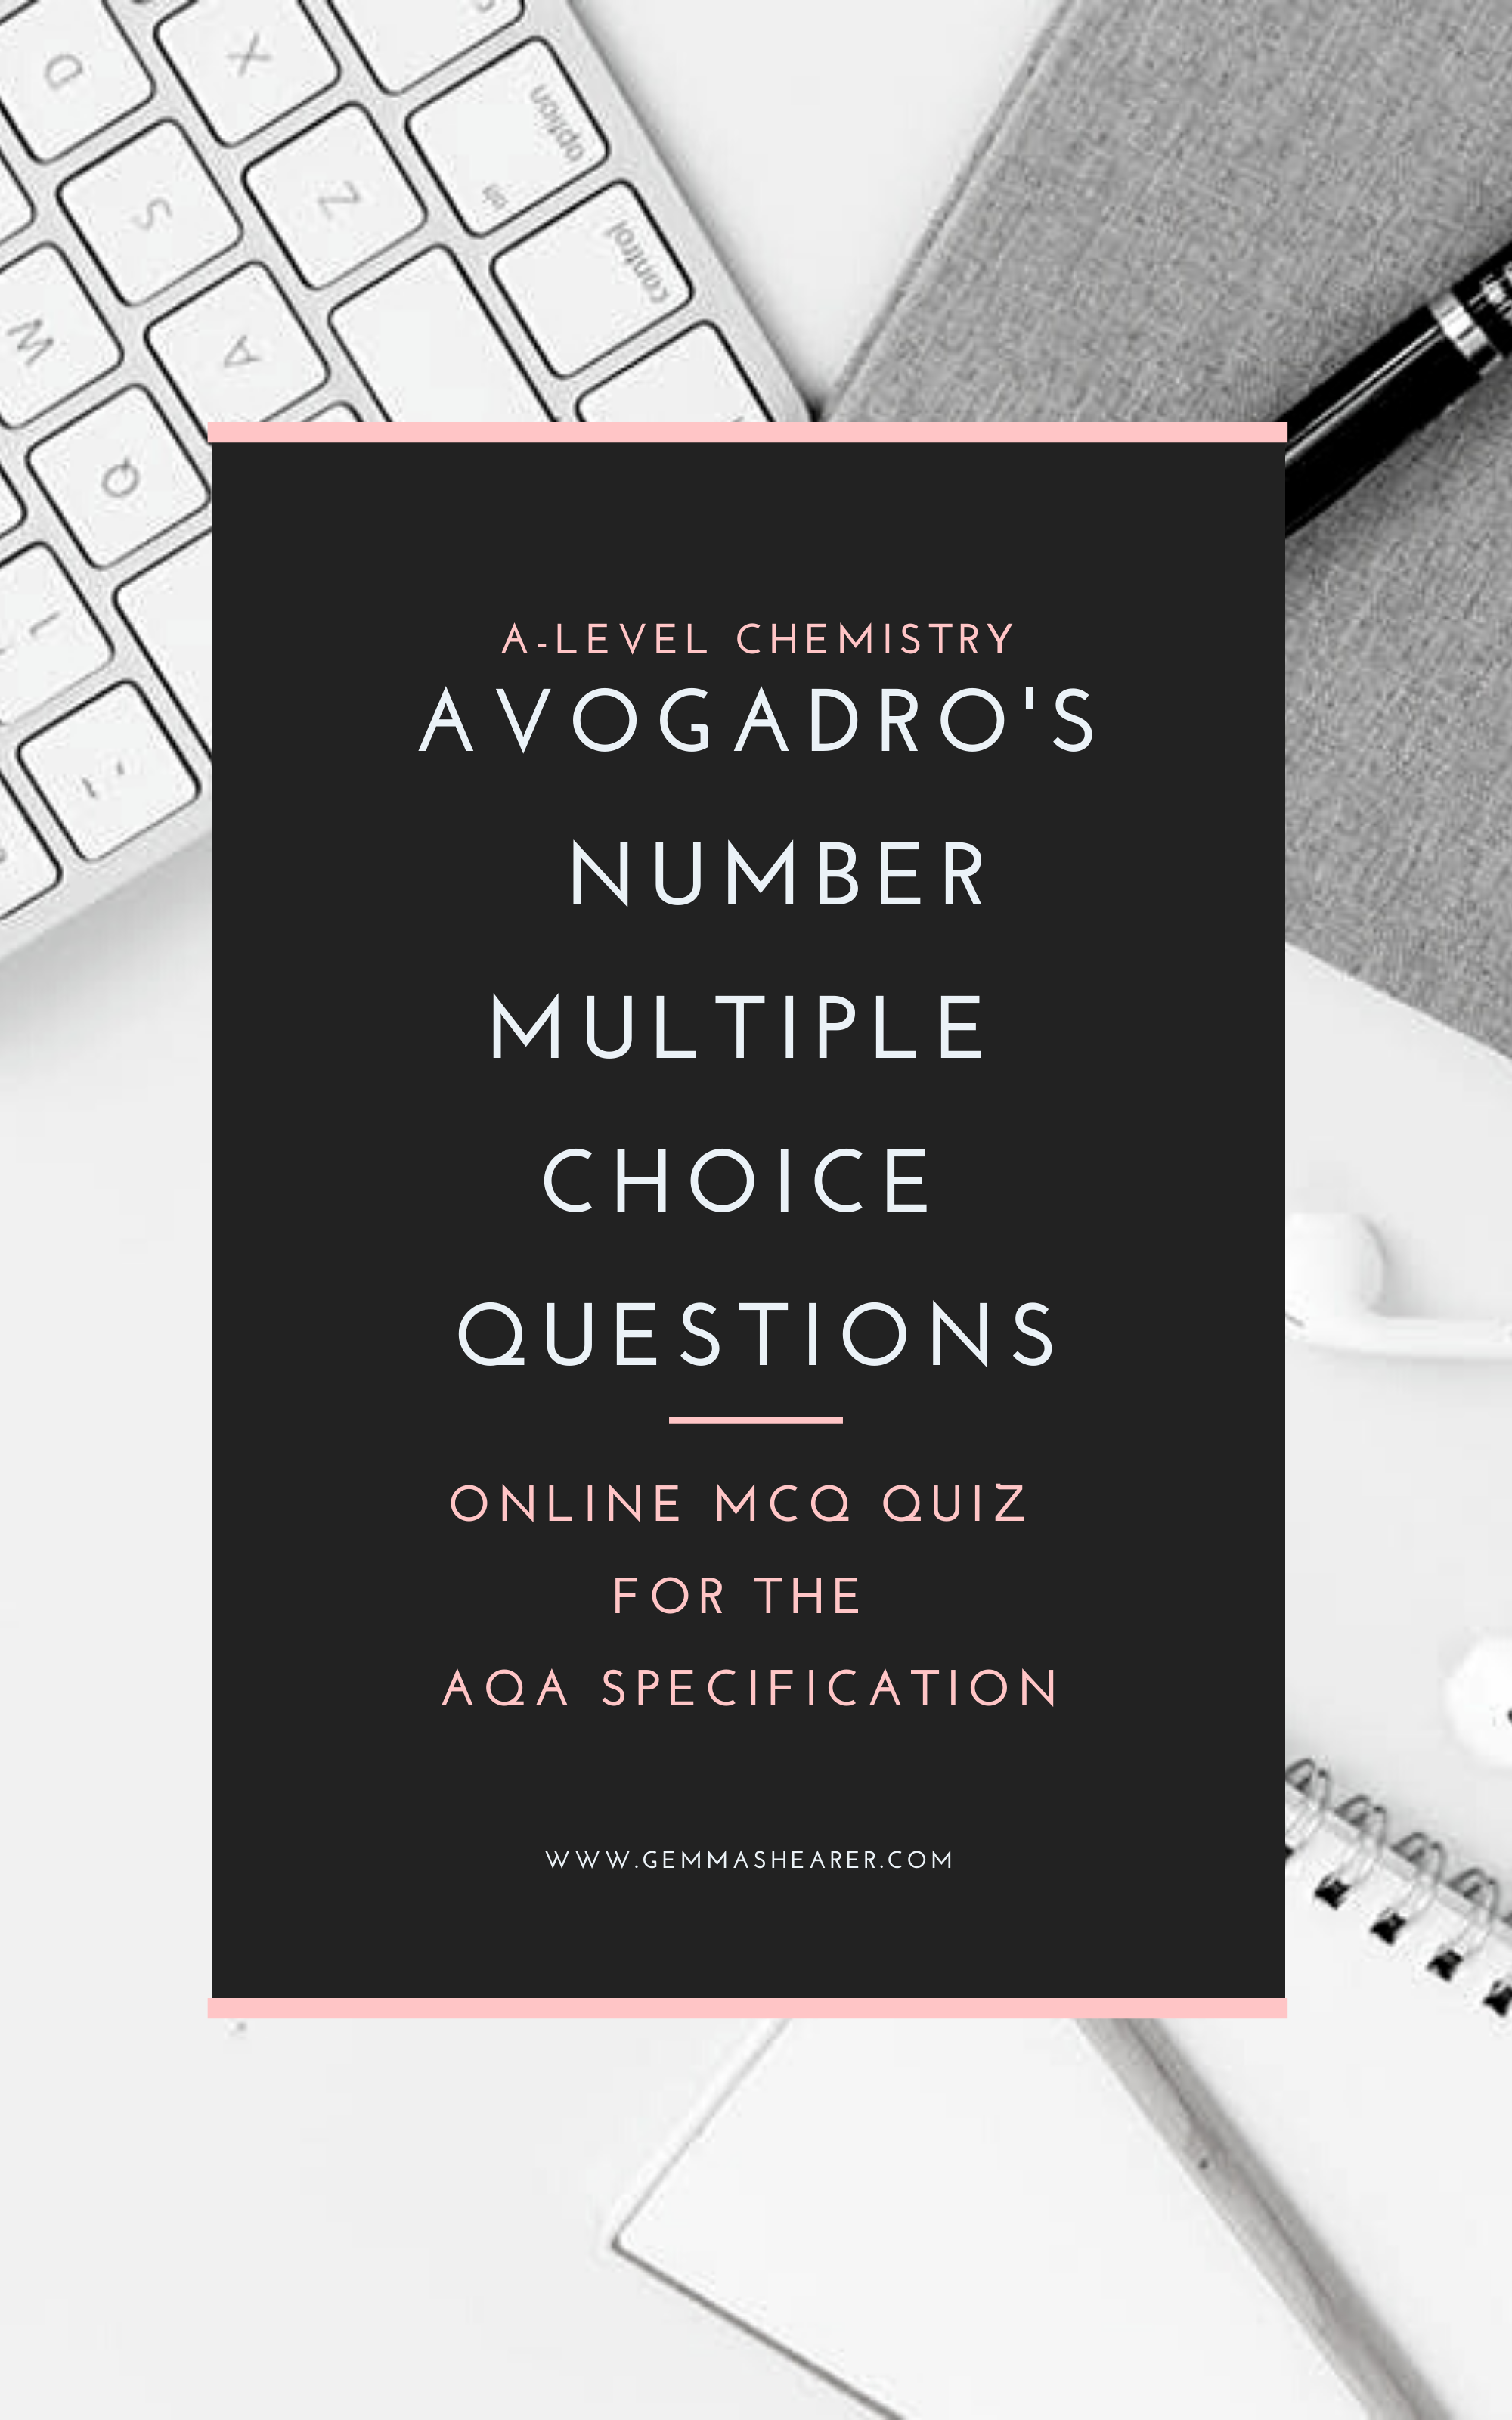 Avogadro's number multiple choice questions for Alevel